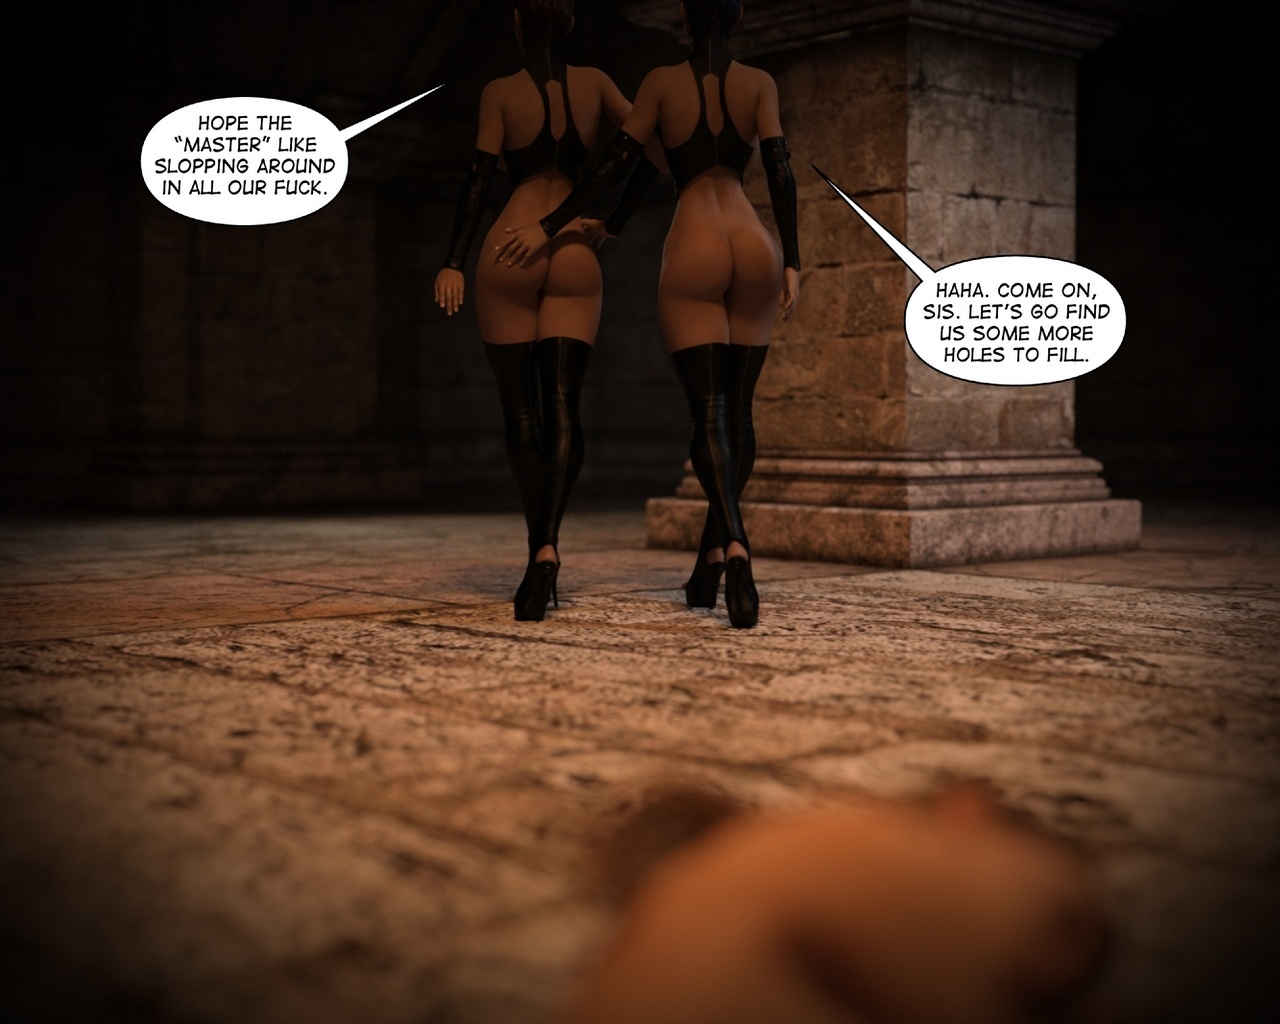 Helen-Black-Vampire-Hunter-To-Hell-1 57 free sex comic